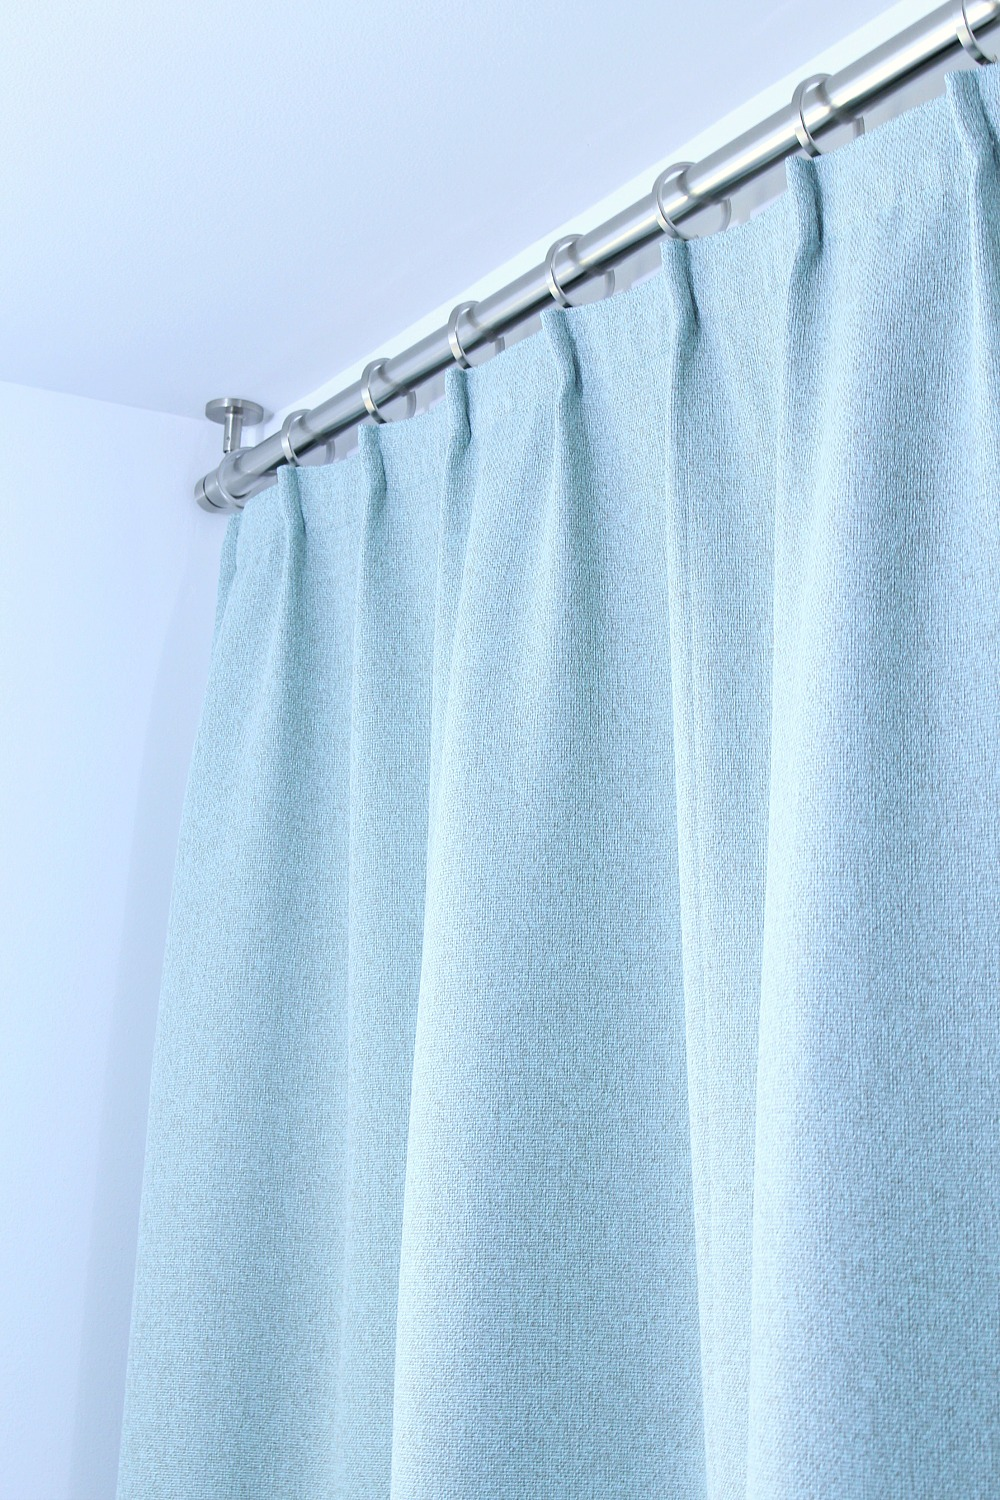 hooks curtain accessories curtains bathroom ideas for showertains full size and designer of rod pictures modern contemporary shower beautiful showerainsain sensational